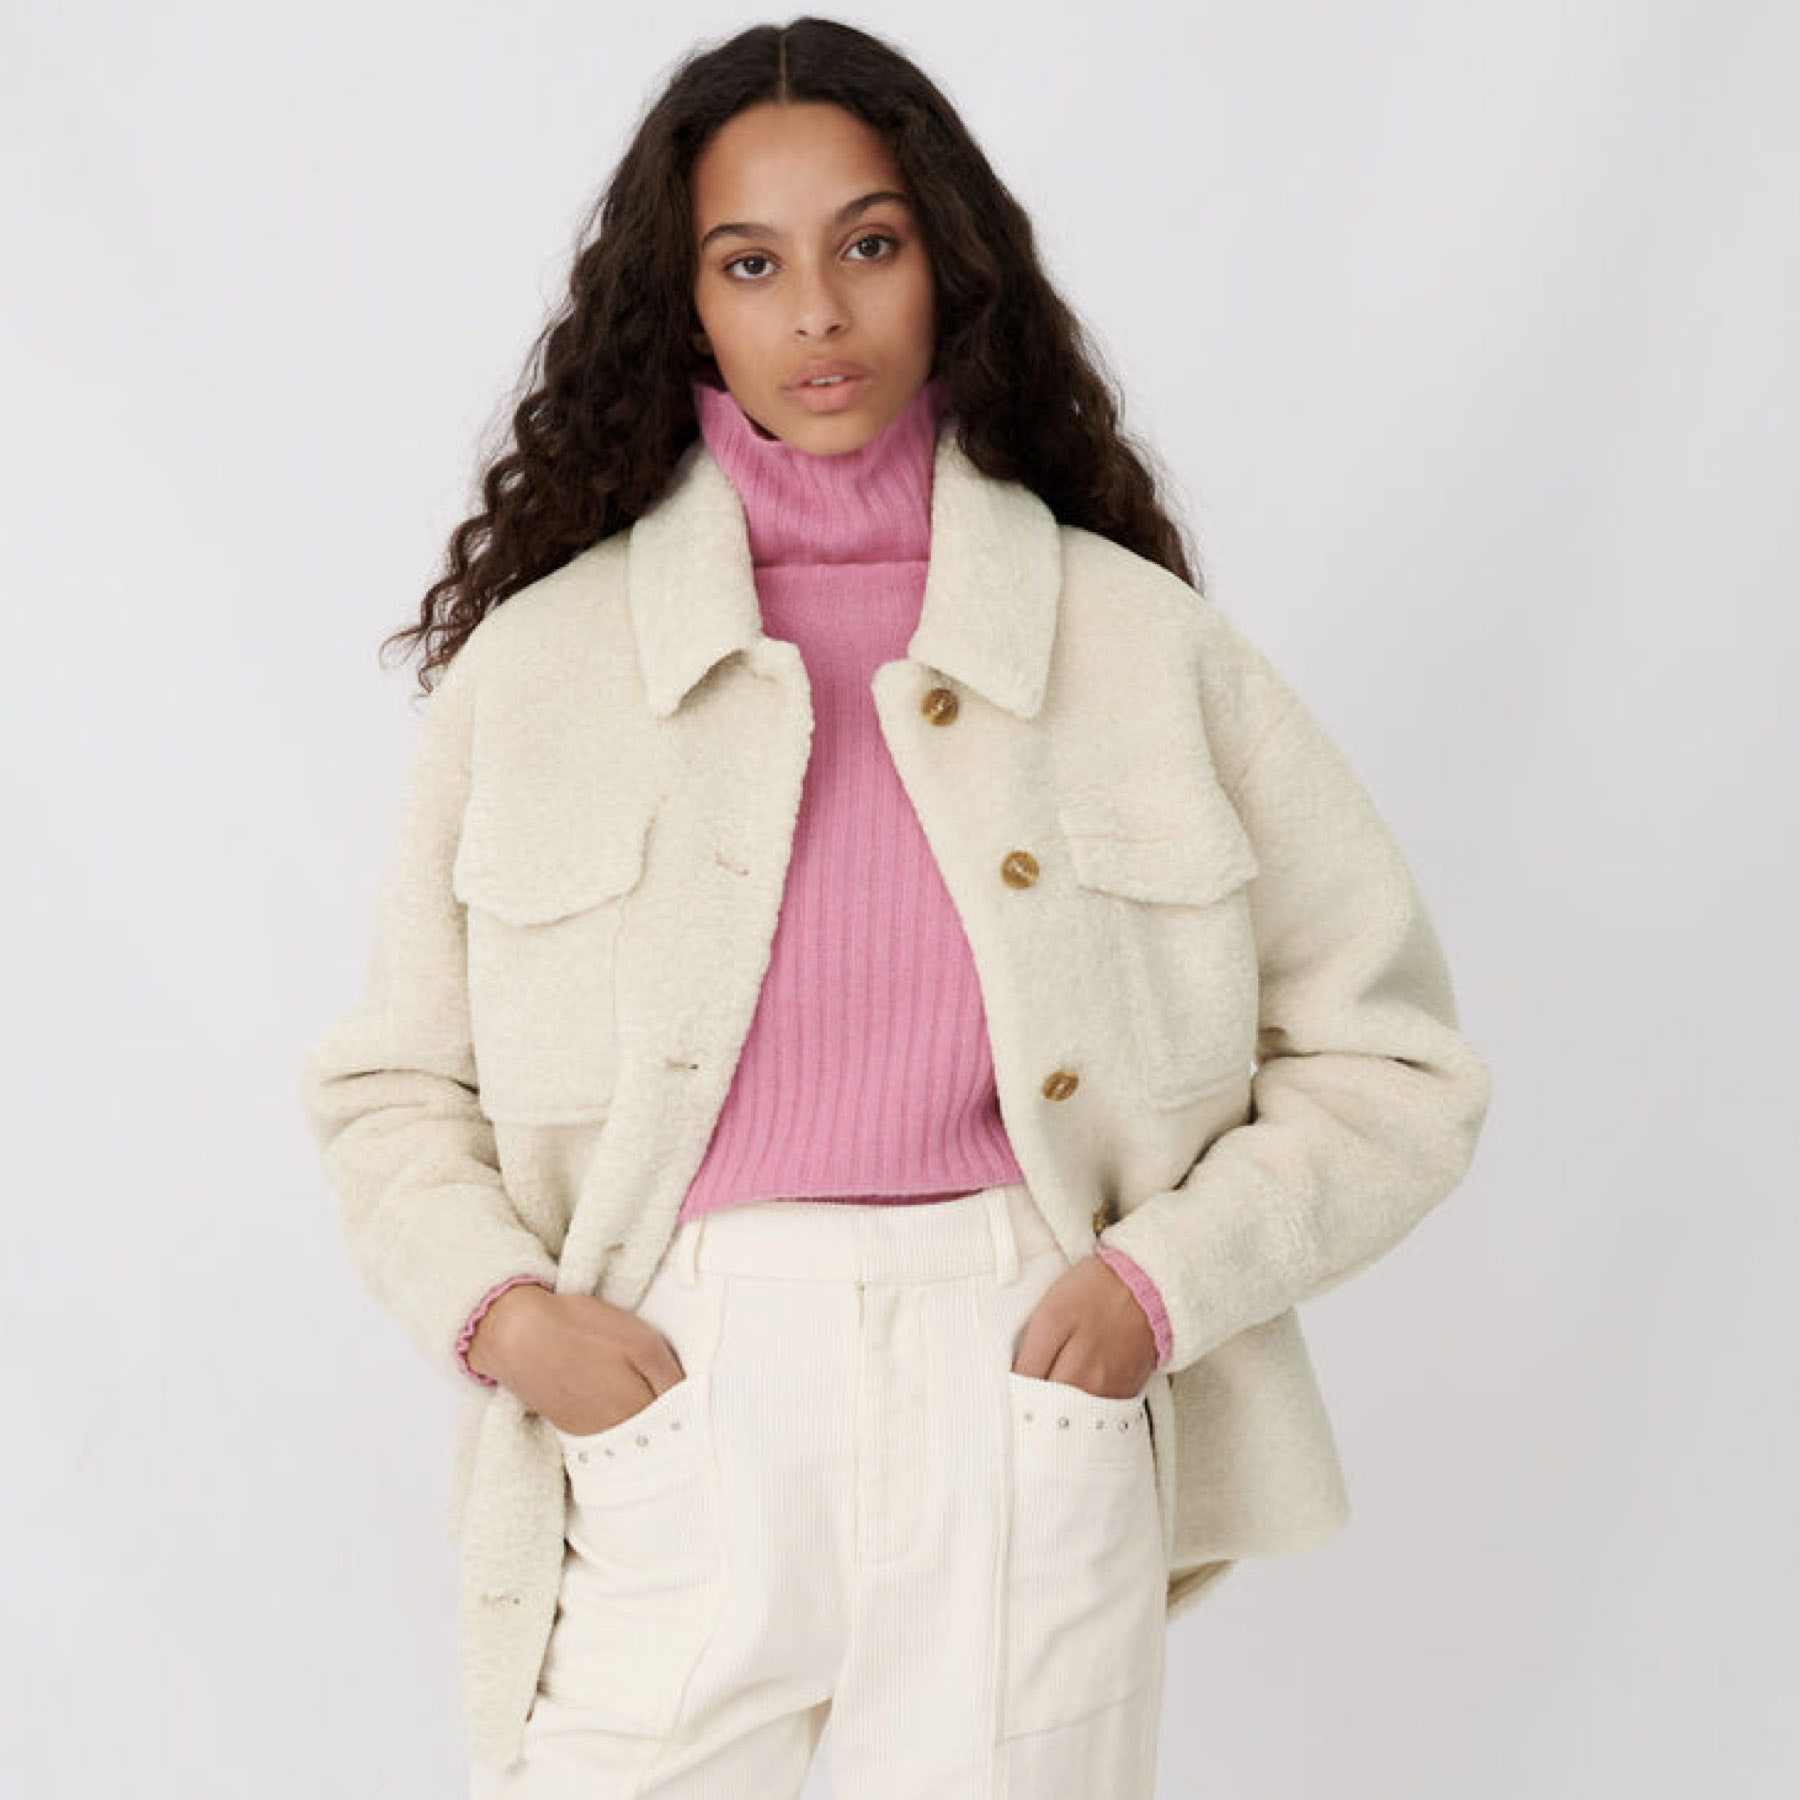 model wearing white fuzzy jacket over pink turtleneck with white pants